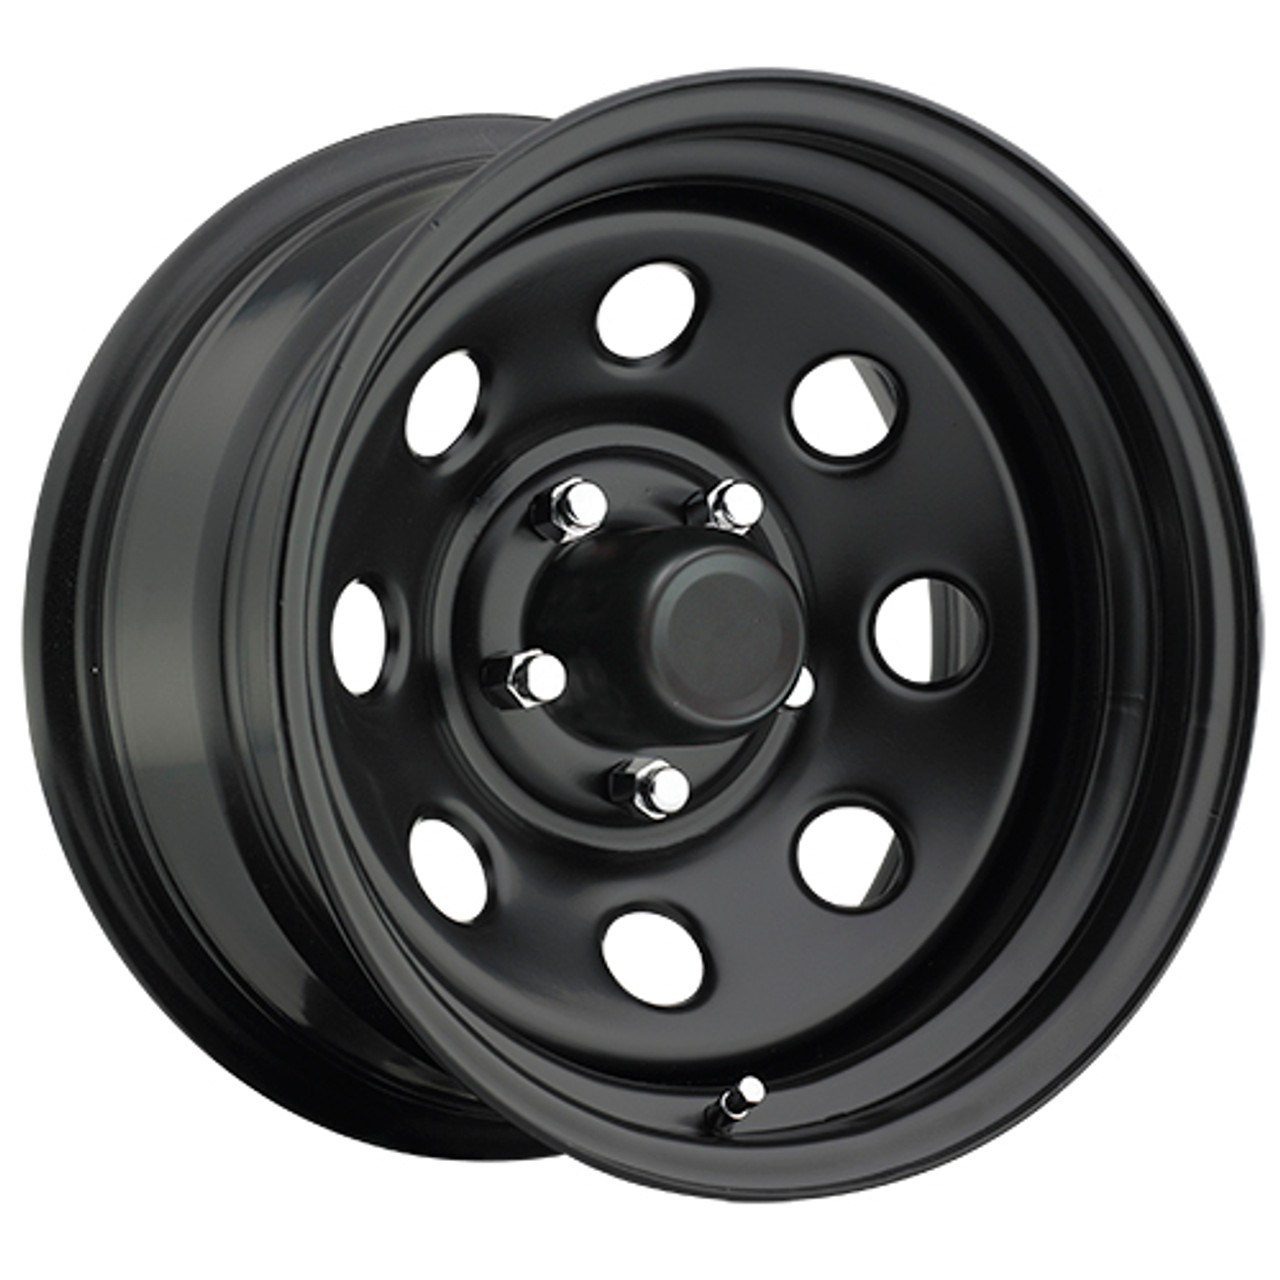 15x8//5x5.5 Pro Comp Steel Wheels Series 97 Wheel with Gloss Black Finish